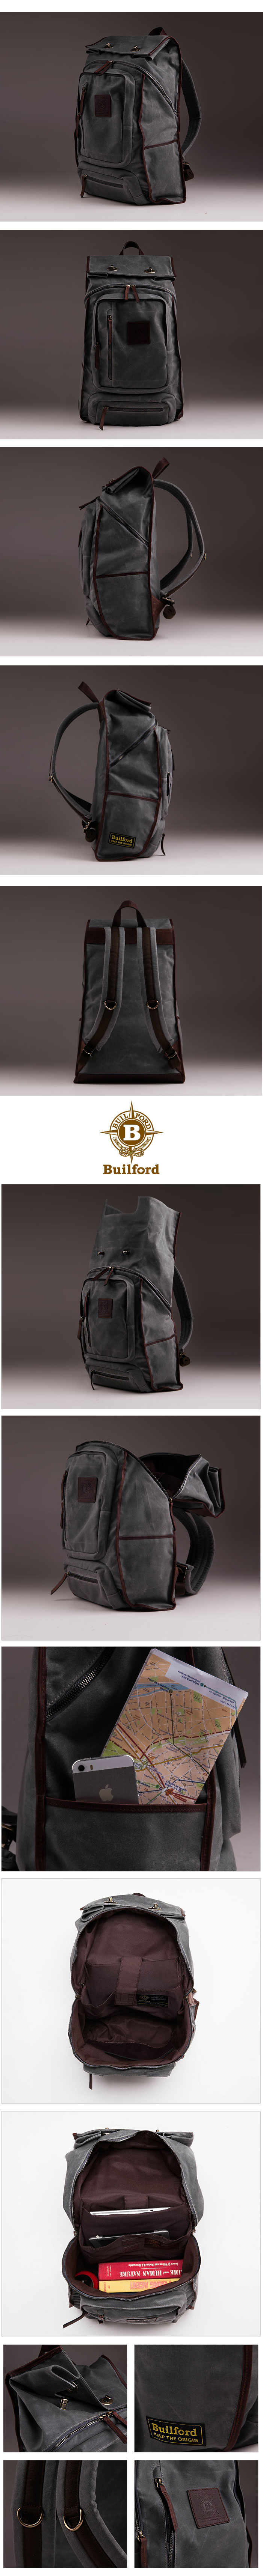 Waxed canvas backpack - Builford roll top safari backpack